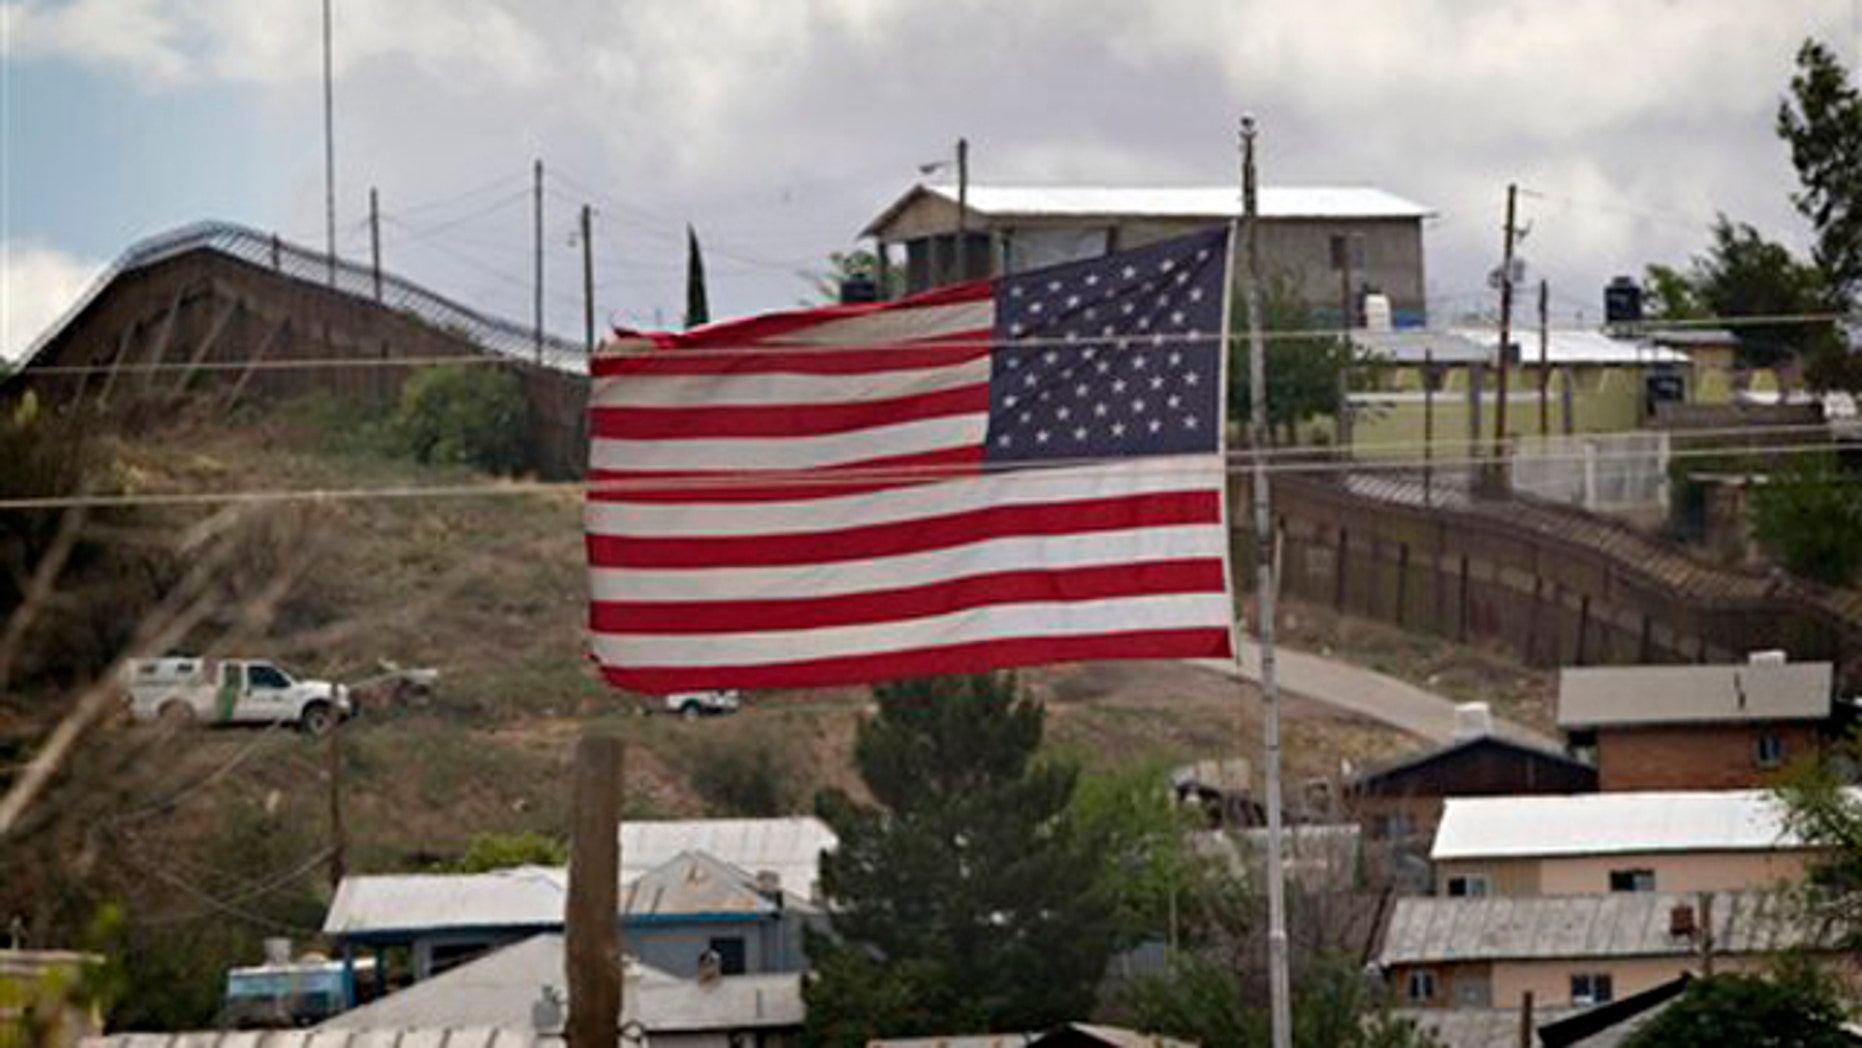 In this April 22 photo, the American flag flies along the international border in Nogales, Ariz. (AP Photo)